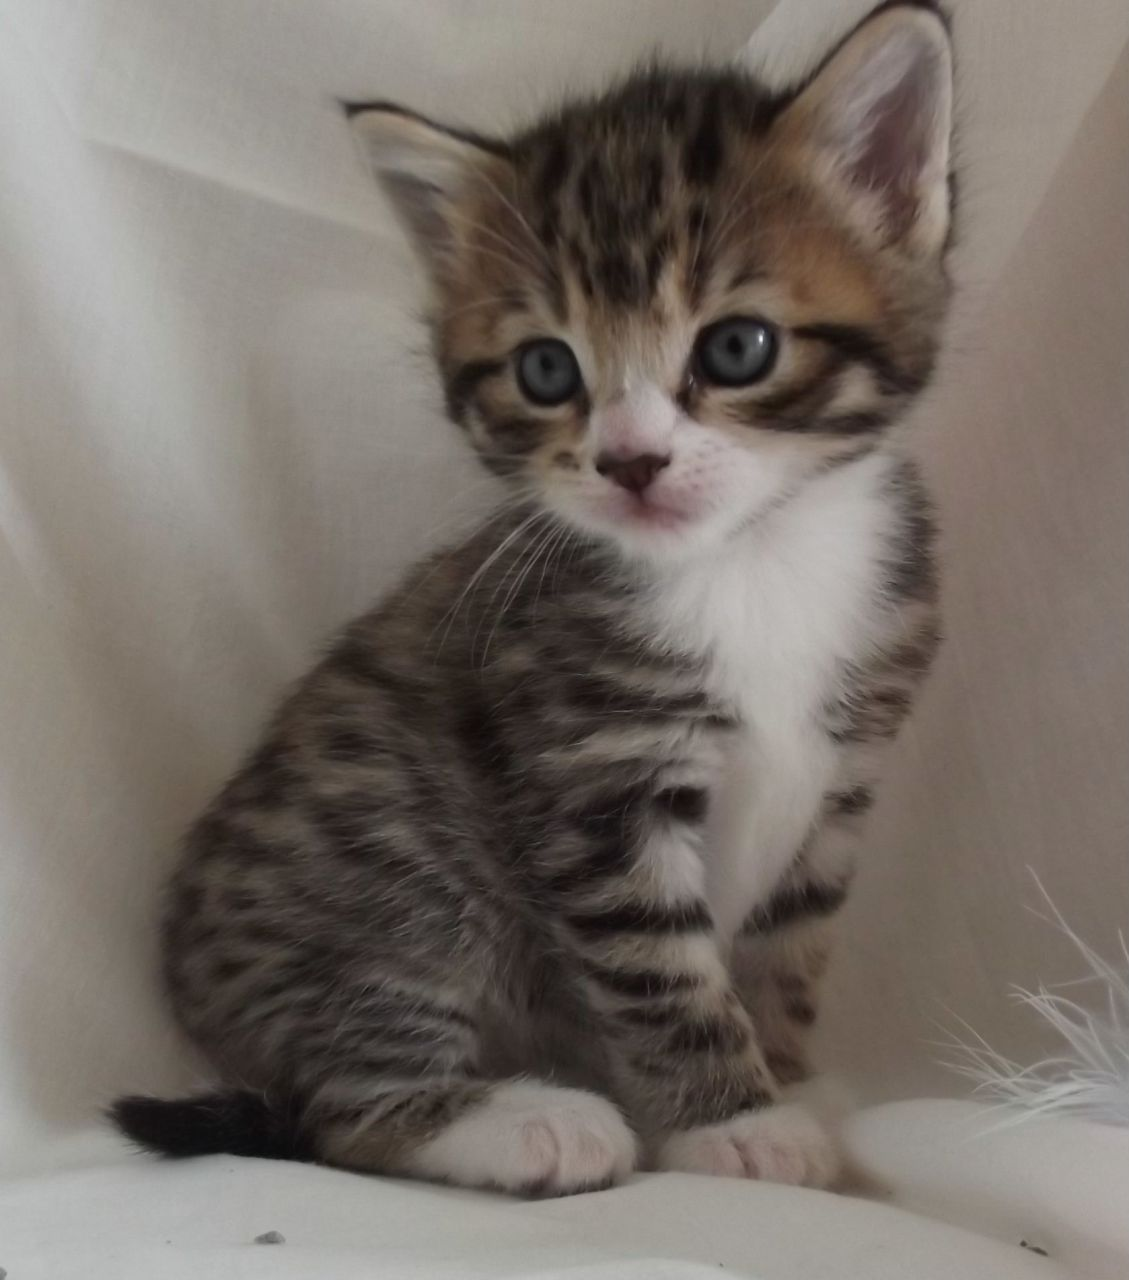 Kittens 4 Sale Black White Bengall Tabby Persian Fareham Hampshire Pets4homes In 2020 Grey Tabby Kittens Grey Kitten Tabby Kittens For Sale